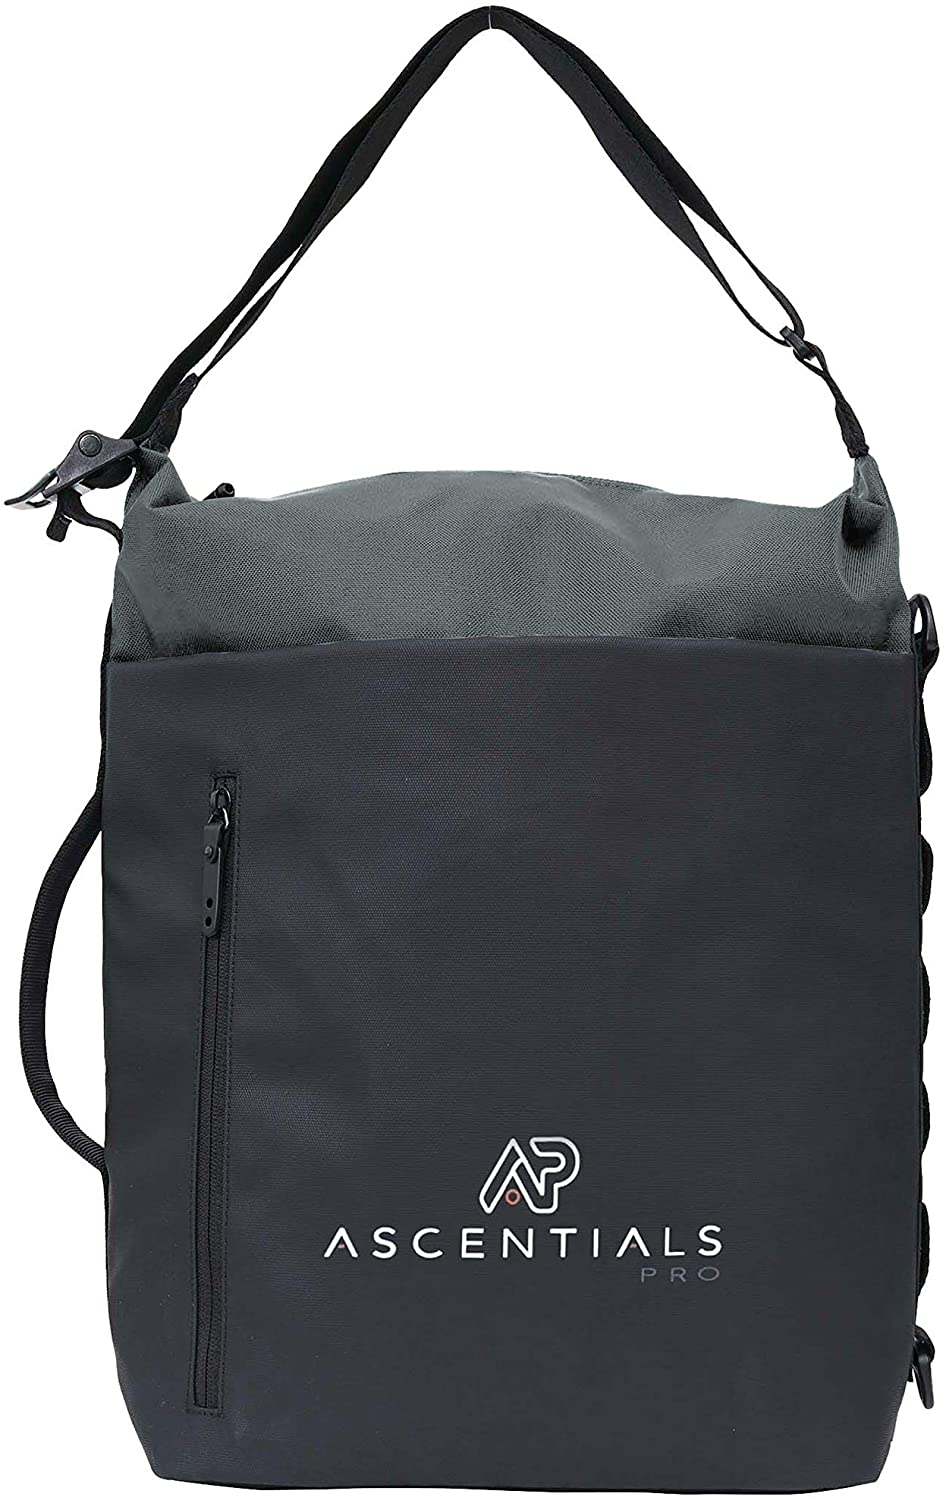 Ascentials Pro Blaze, Nylon Backpack, Professional Laptop Backpack for Men with 15 Inch Laptop Sleeve (Loden)